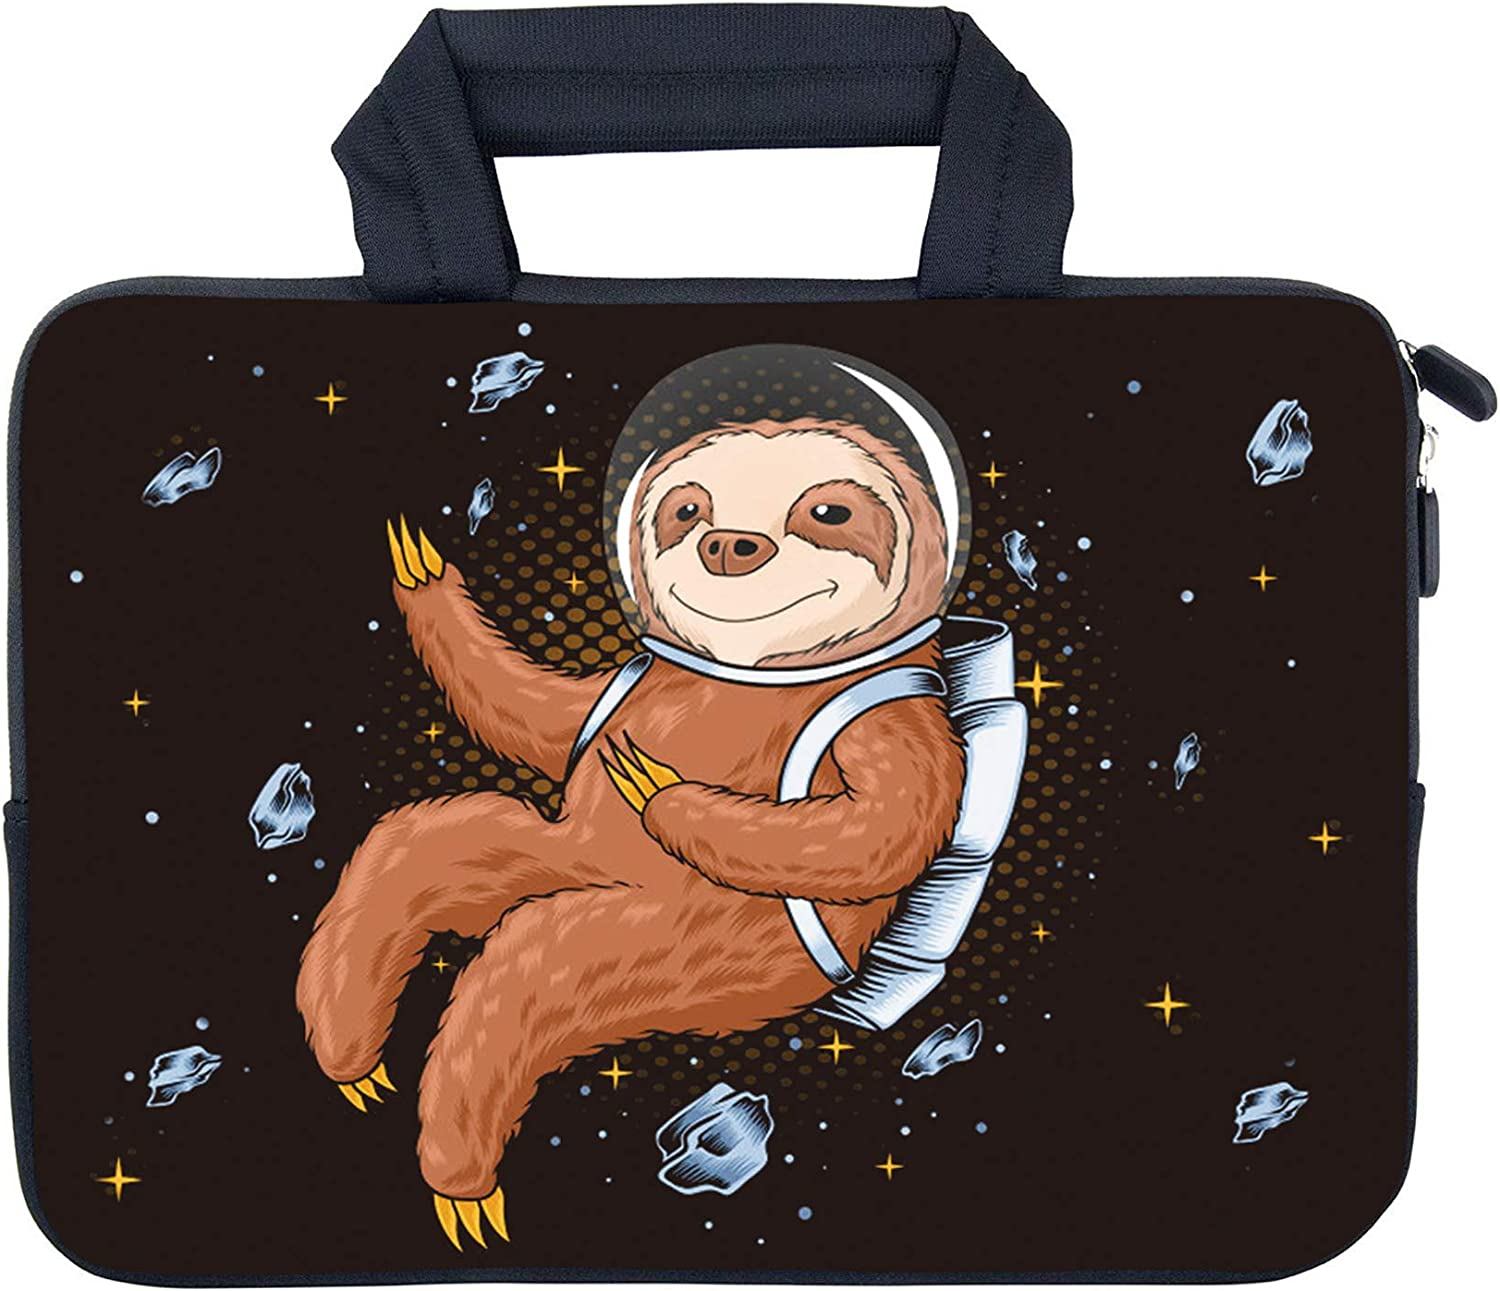 "AMARY 11.6"" 12"" 12.1"" 12.5 inch Laptop Handle Bag Neoprene Notebook Carrying Pouch Chromebook Sleeve Ultrabook Case Tablet Cover Fit Apple MacBook Air HP DELL Lenovo Asus Samsung (Sloth)"